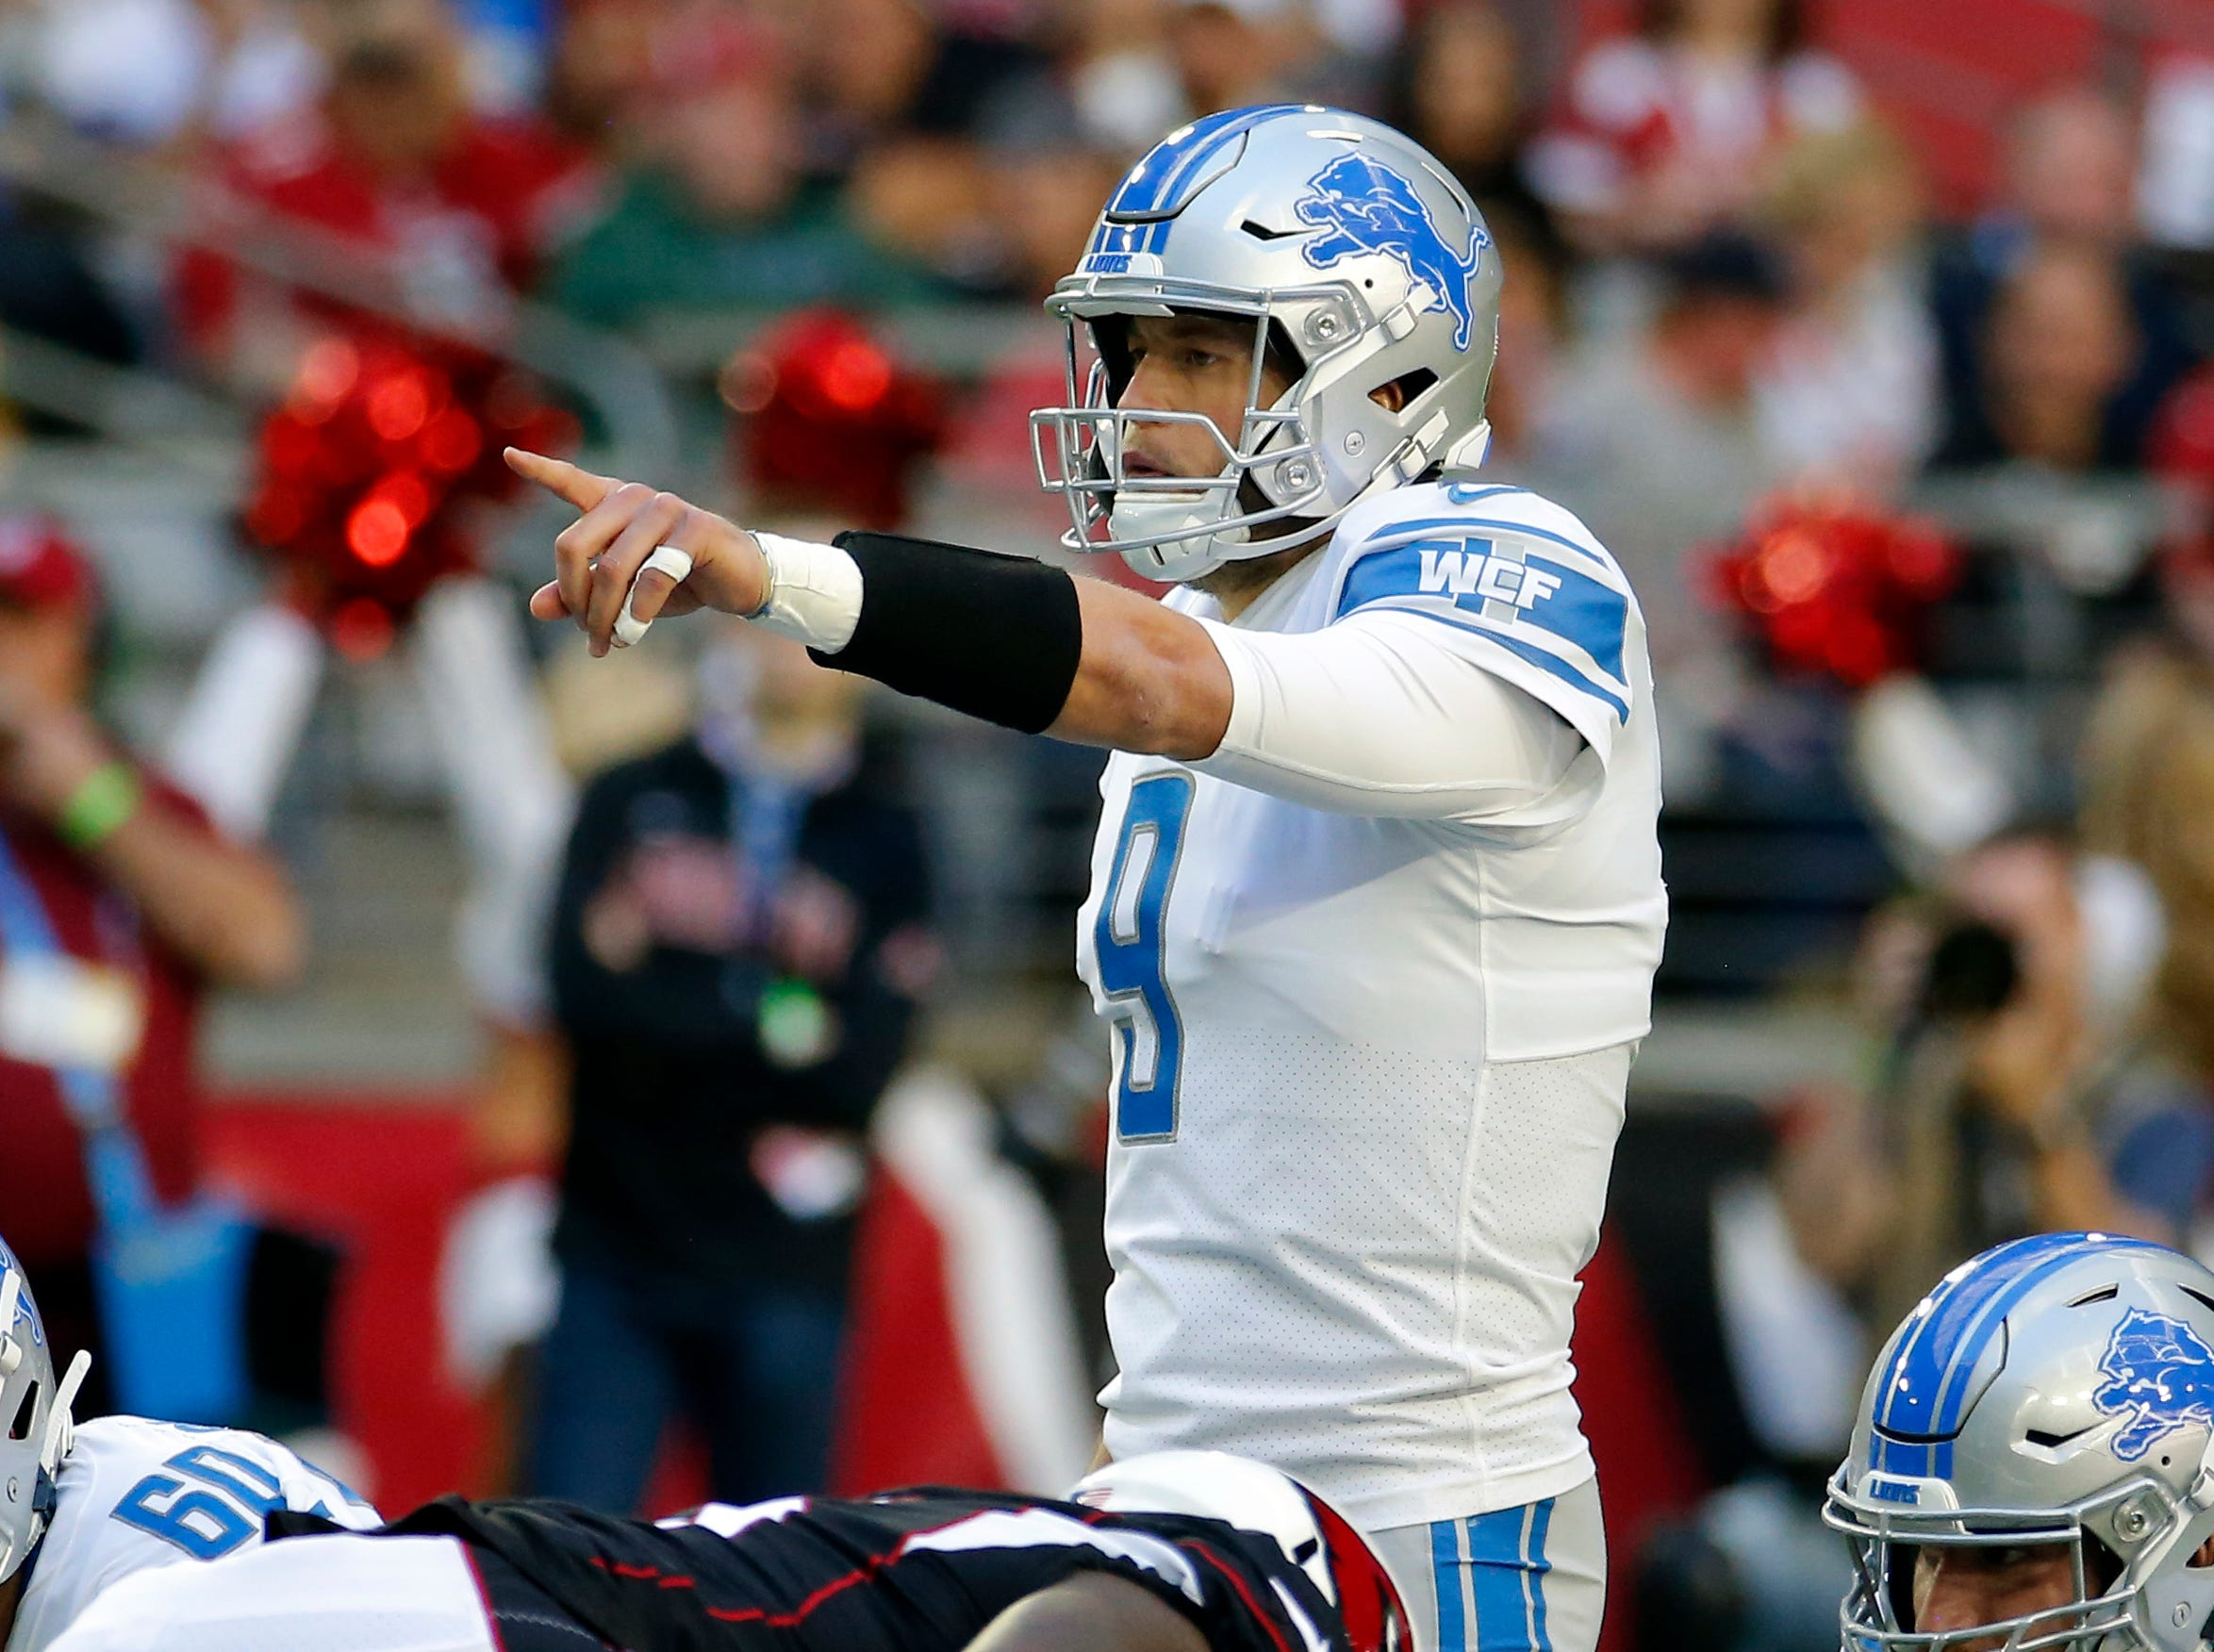 Detroit Lions quarterback Matthew Stafford (9) makes a call against the Arizona Cardinals during the first half.